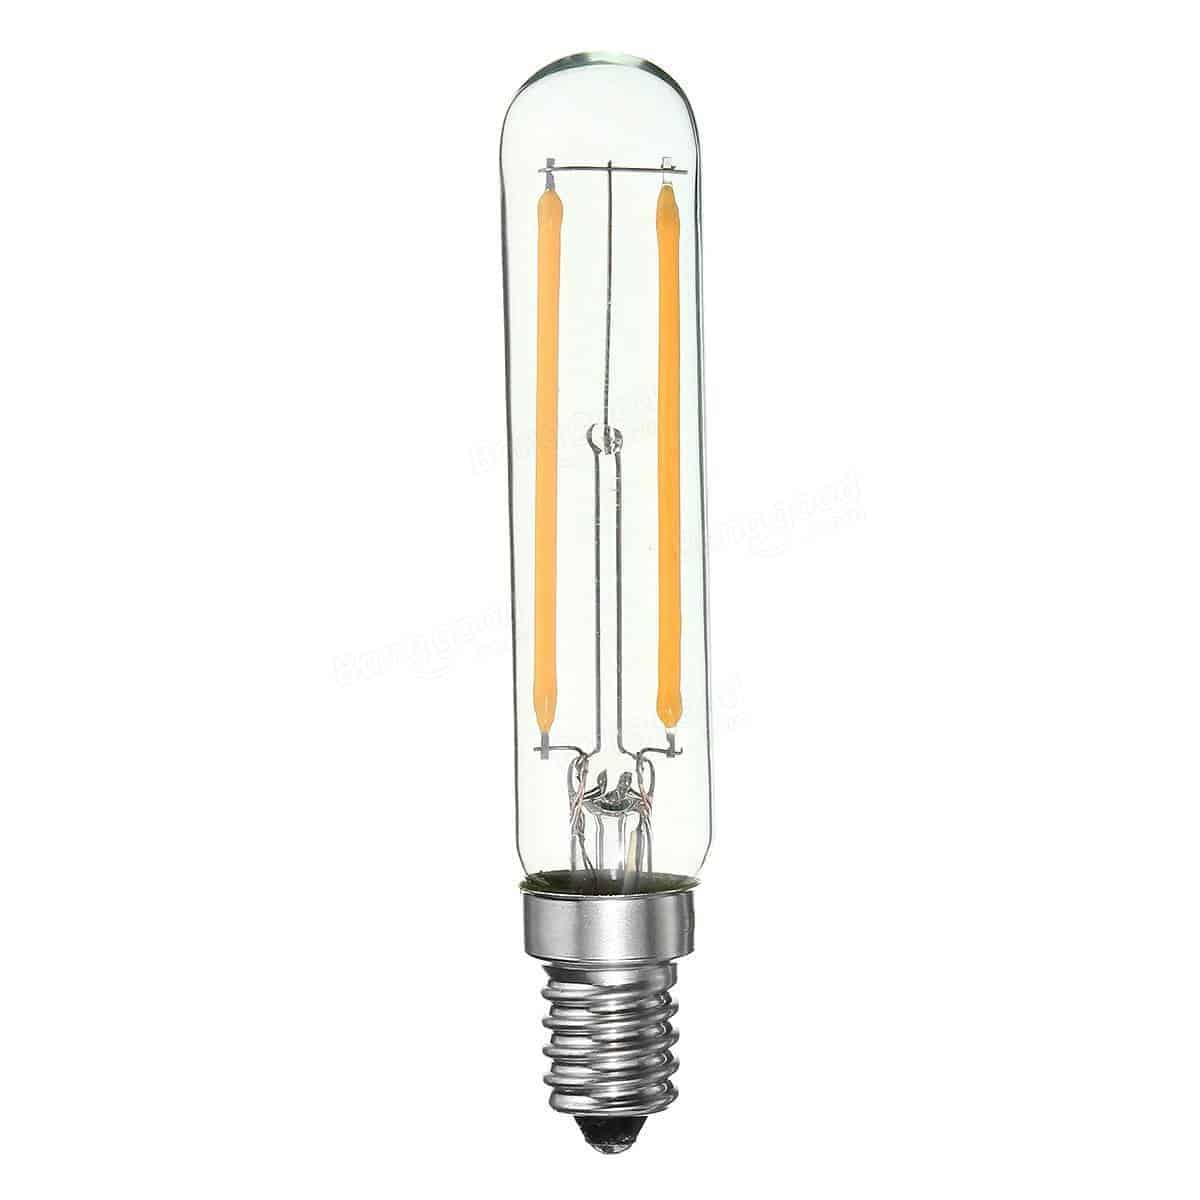 Dimbaar Led Verlichting E14 Led Buislamp Filament 2w Vervangt 20w Dimbaar T20